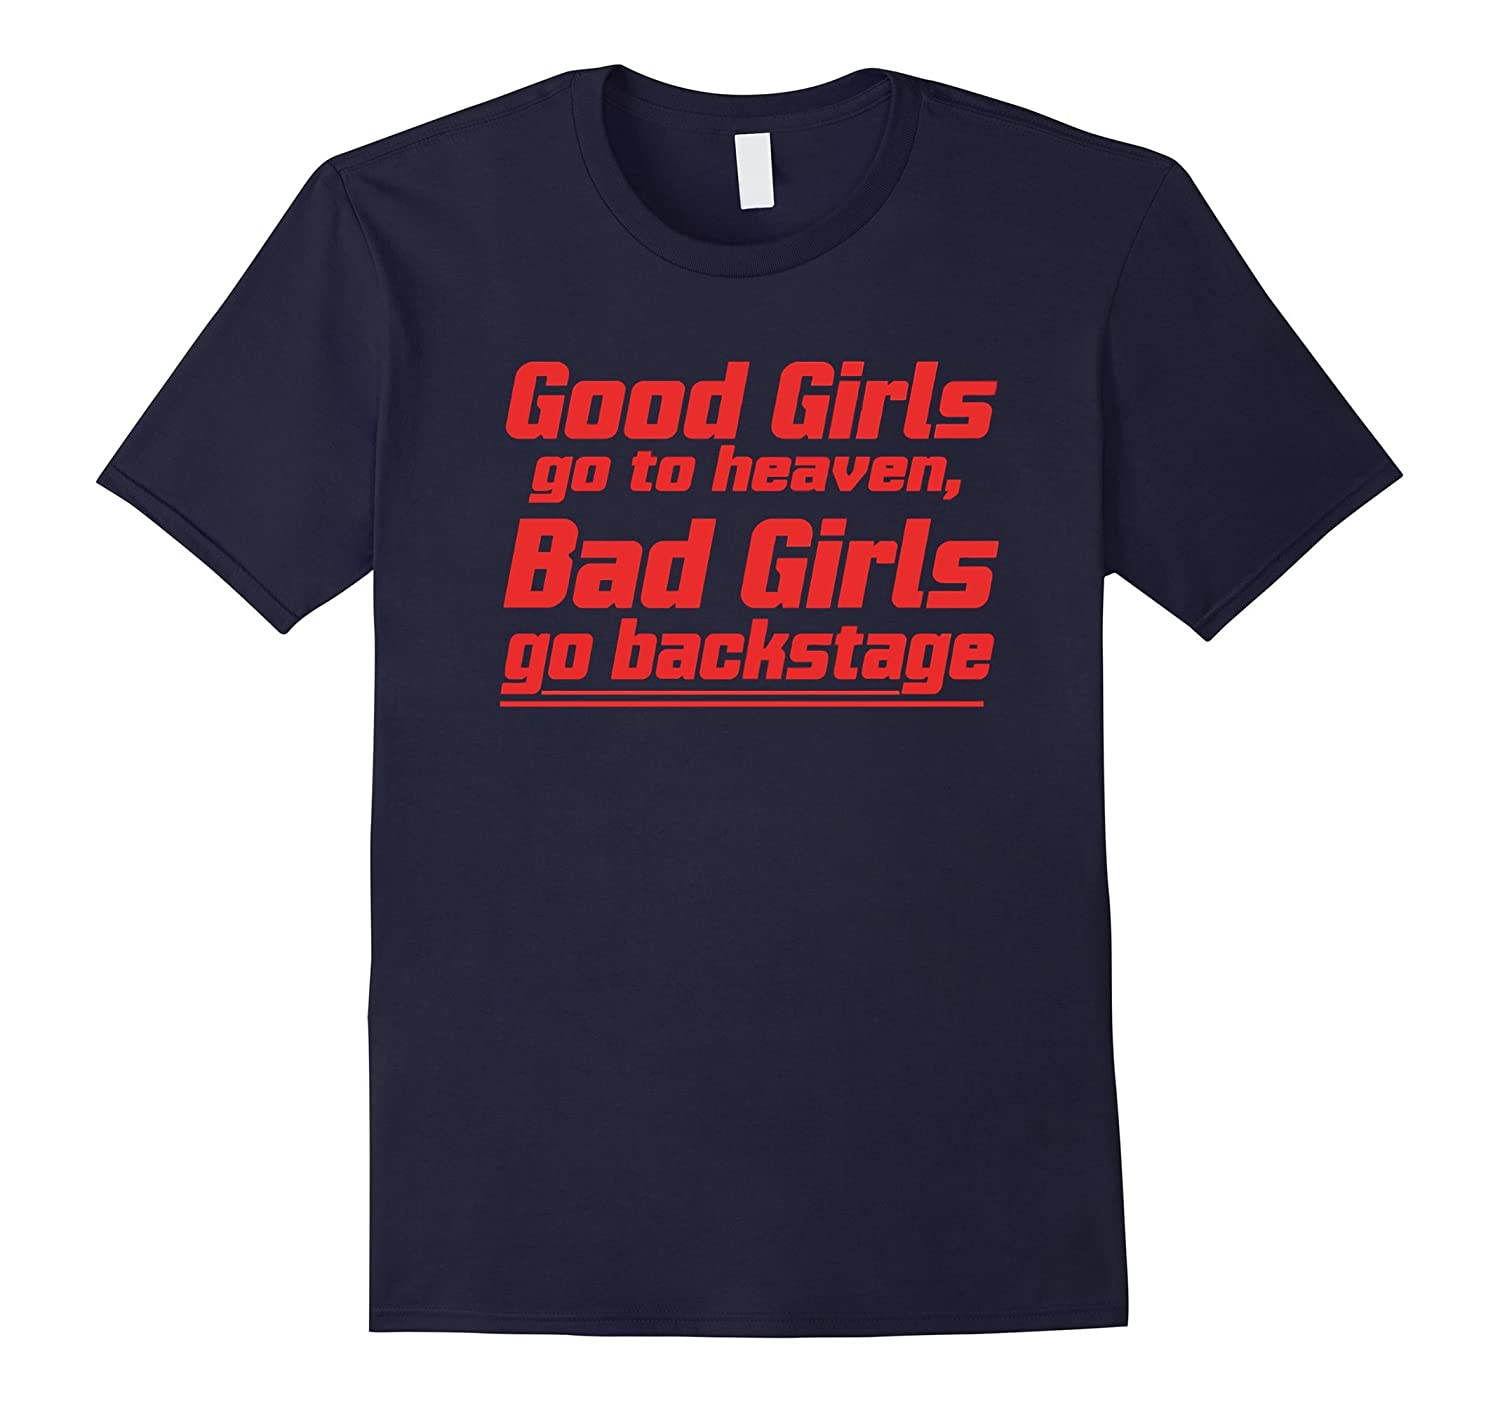 Good Girls Go To Heaven, Bad Girls go Backstage T Shirt 2016-BN